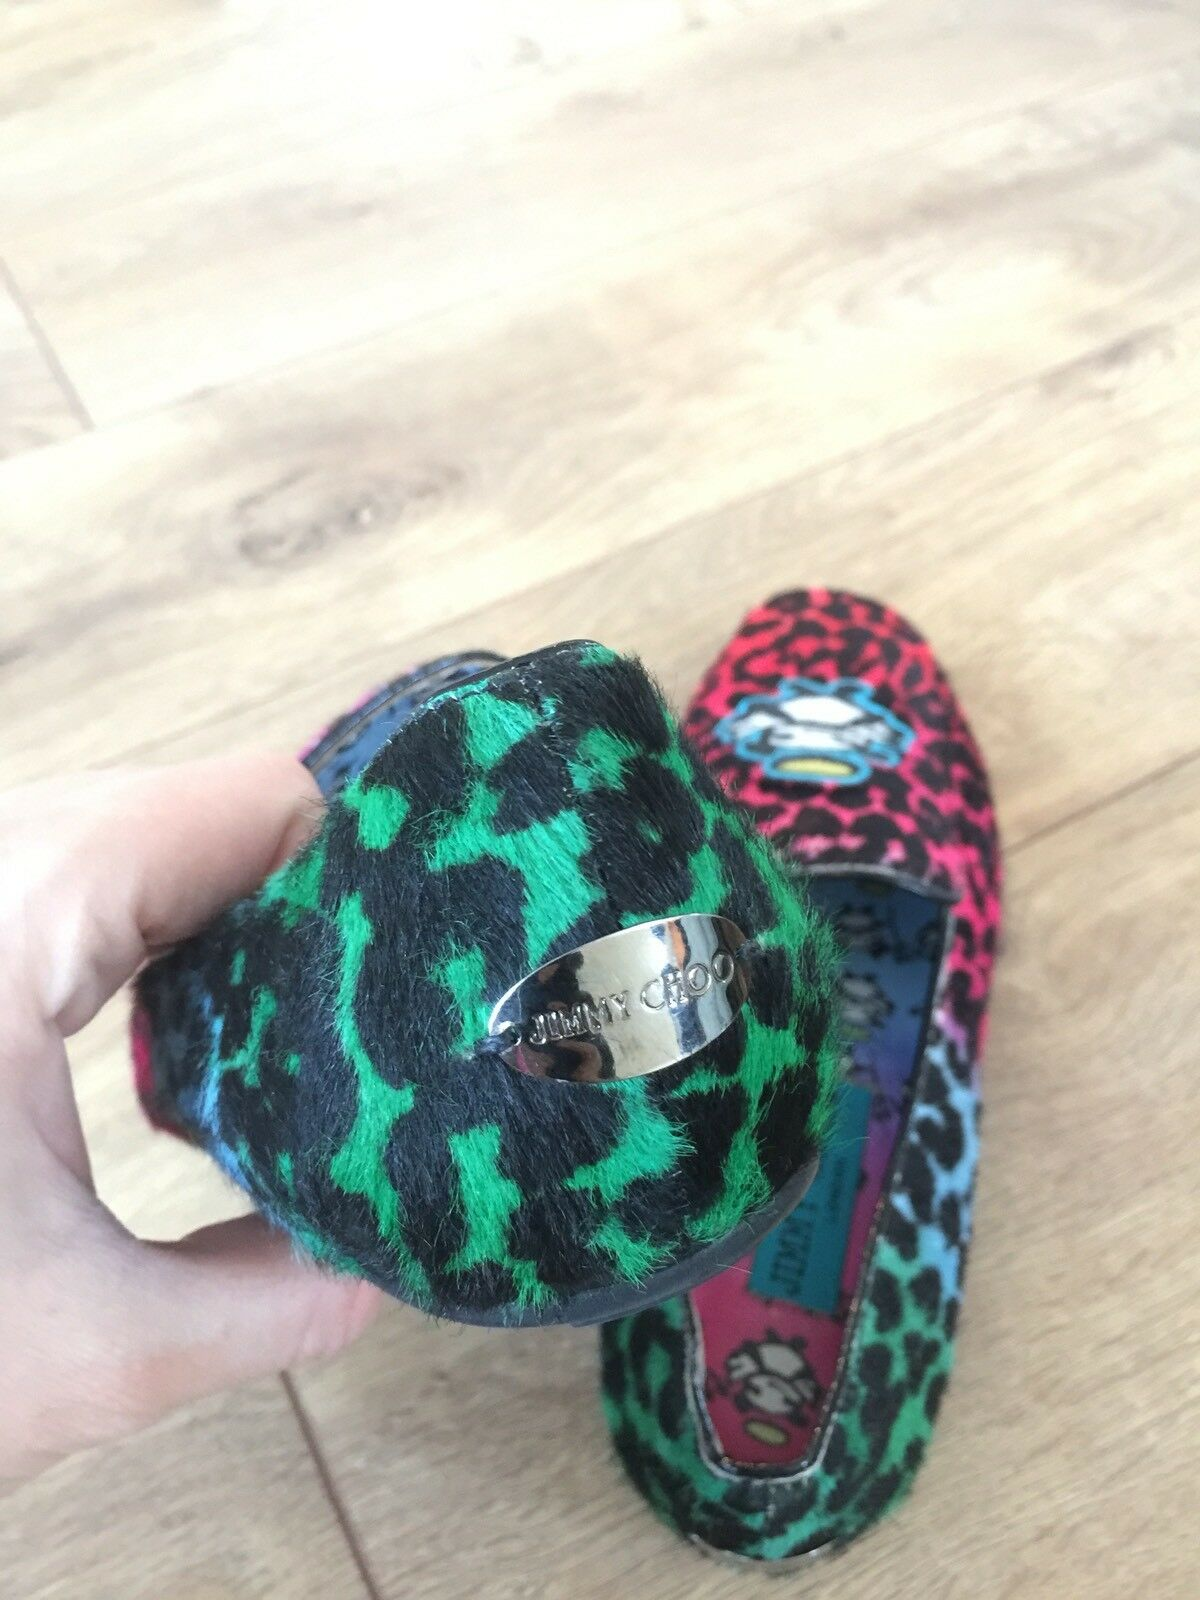 New Jimmy Choo Rob Pruitt Collection Leopard Calf Hair Hair Calf Loafers Shoes 35.5 $850 30d313